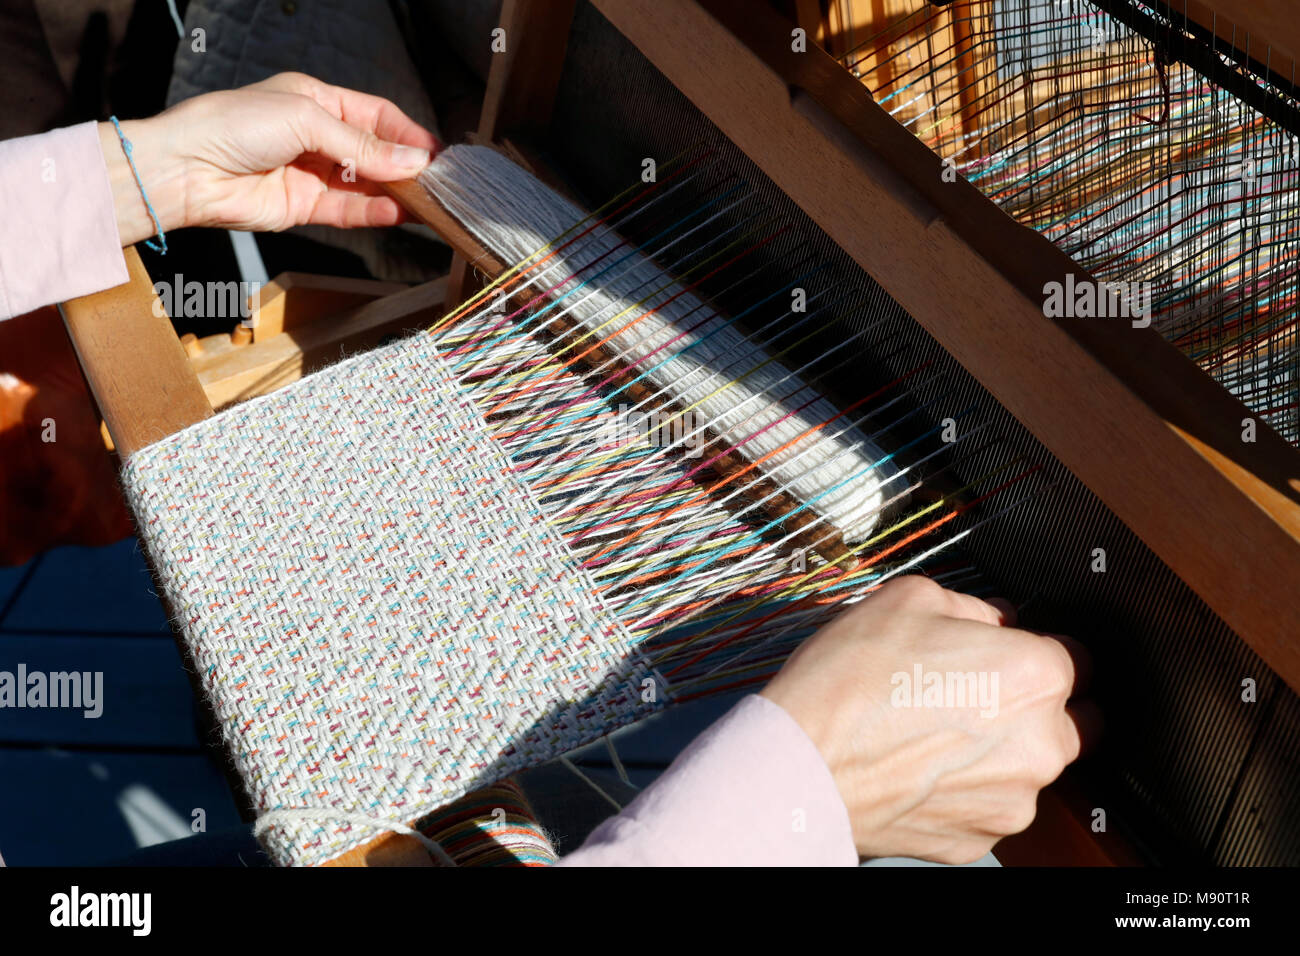 Close-up of weaving loom. - Stock Image